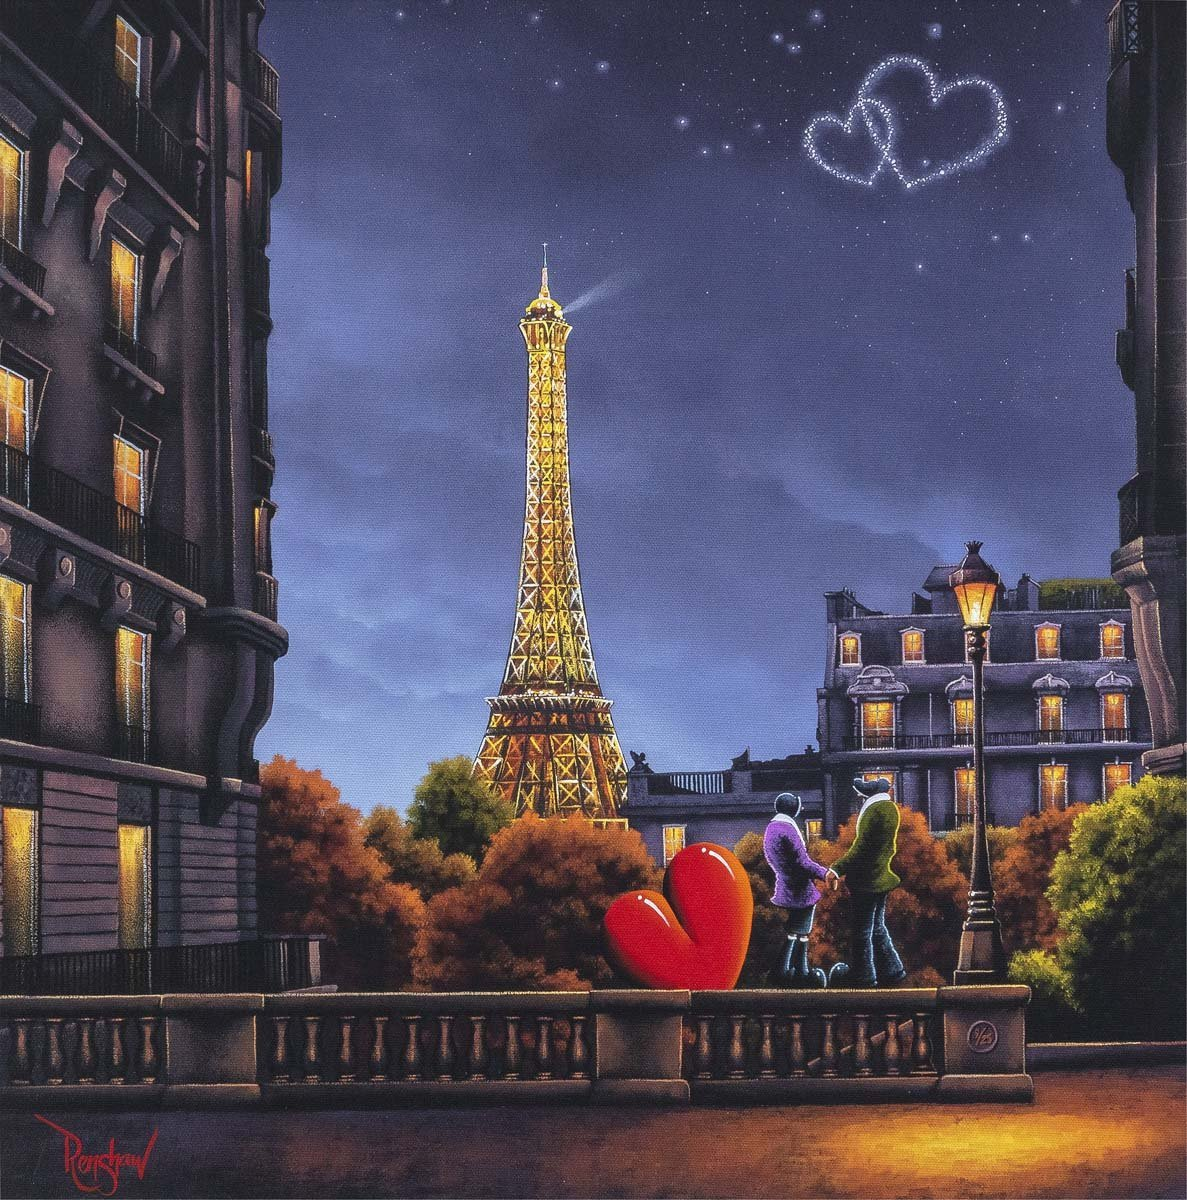 City of Love, City of Light - Edition David Renshaw Edition 9